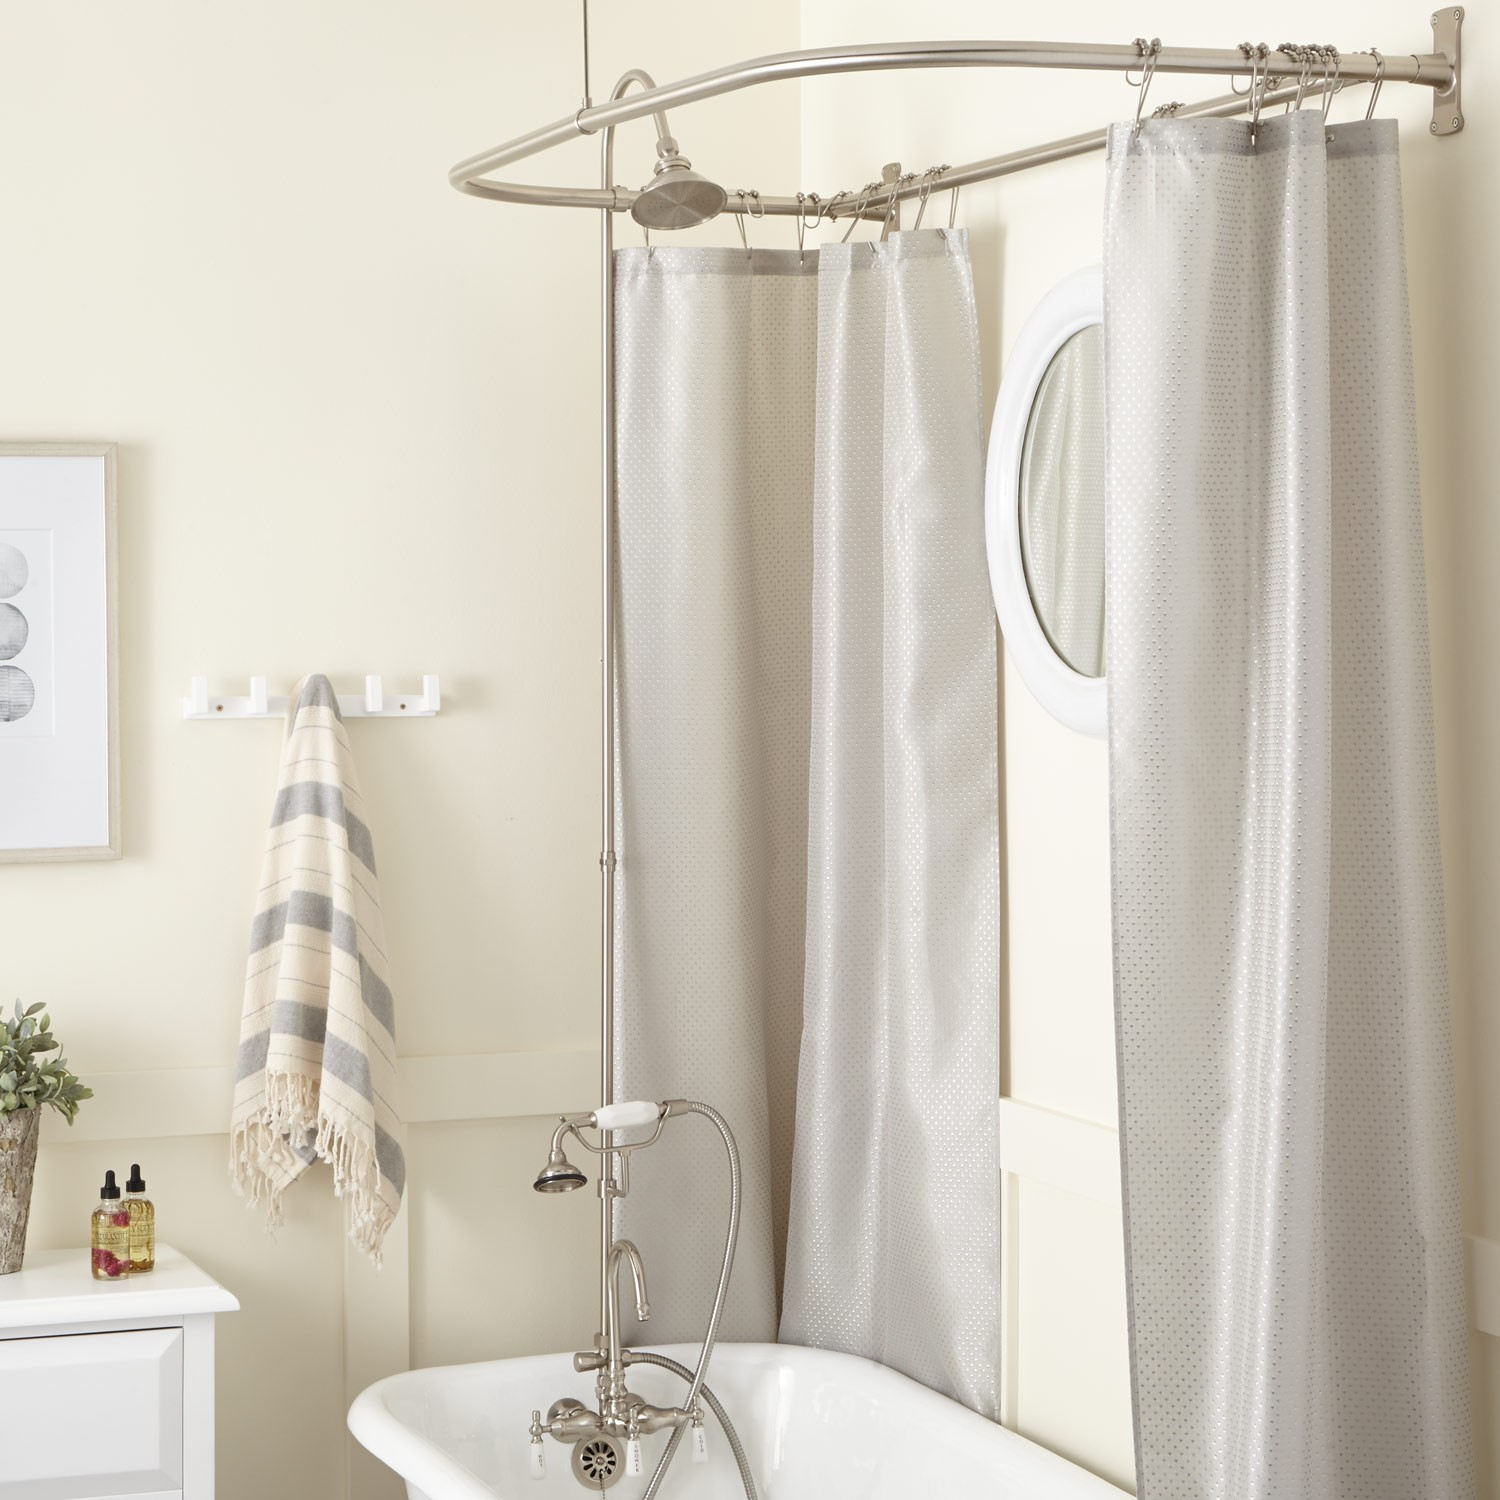 Shower Curtain Freestanding Bath | Extra Wide Shower Liner | Clawfoot Tub Shower Curtain